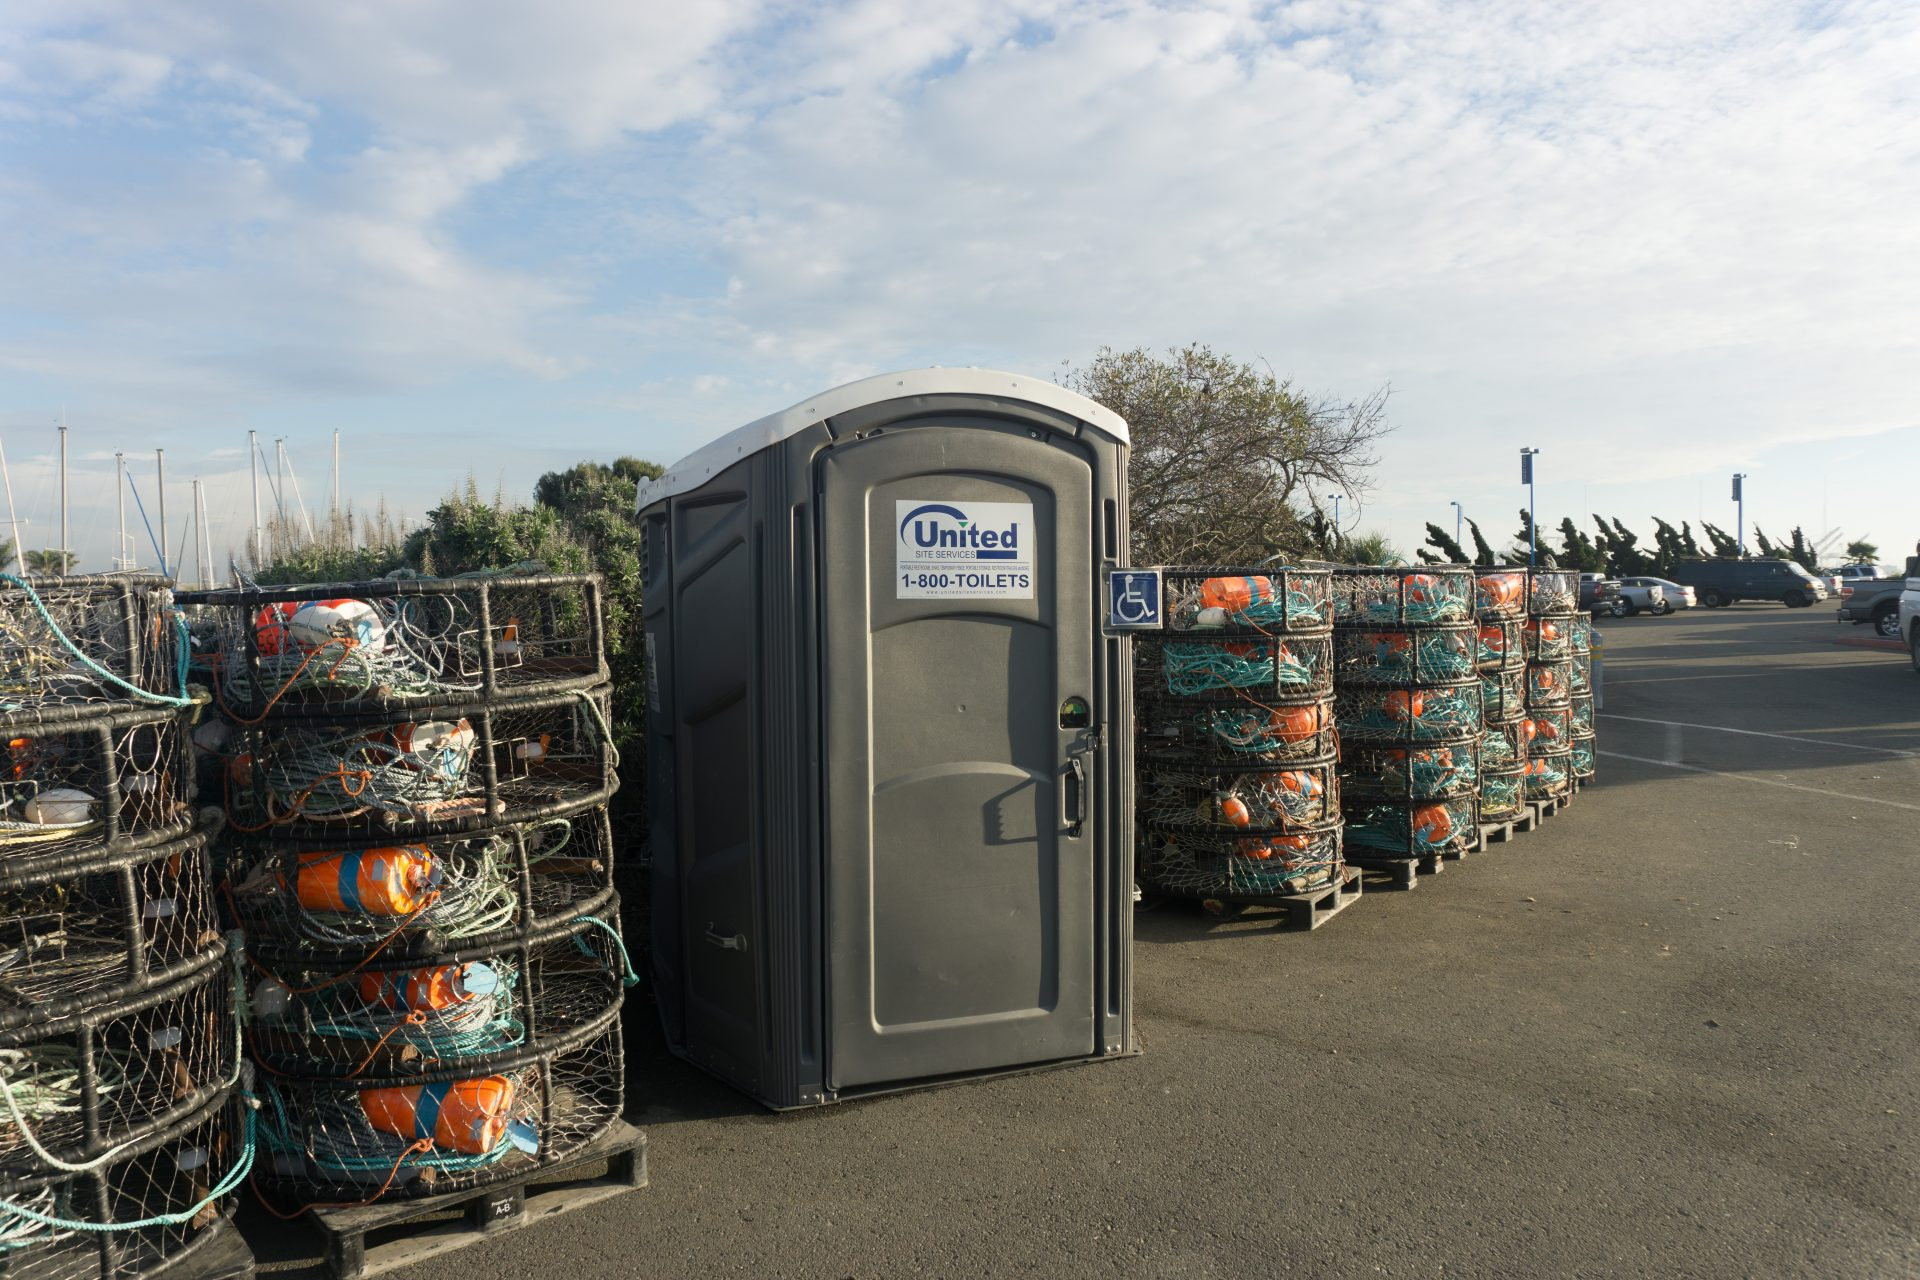 stacks of crab traps on either side of an accessible toilet